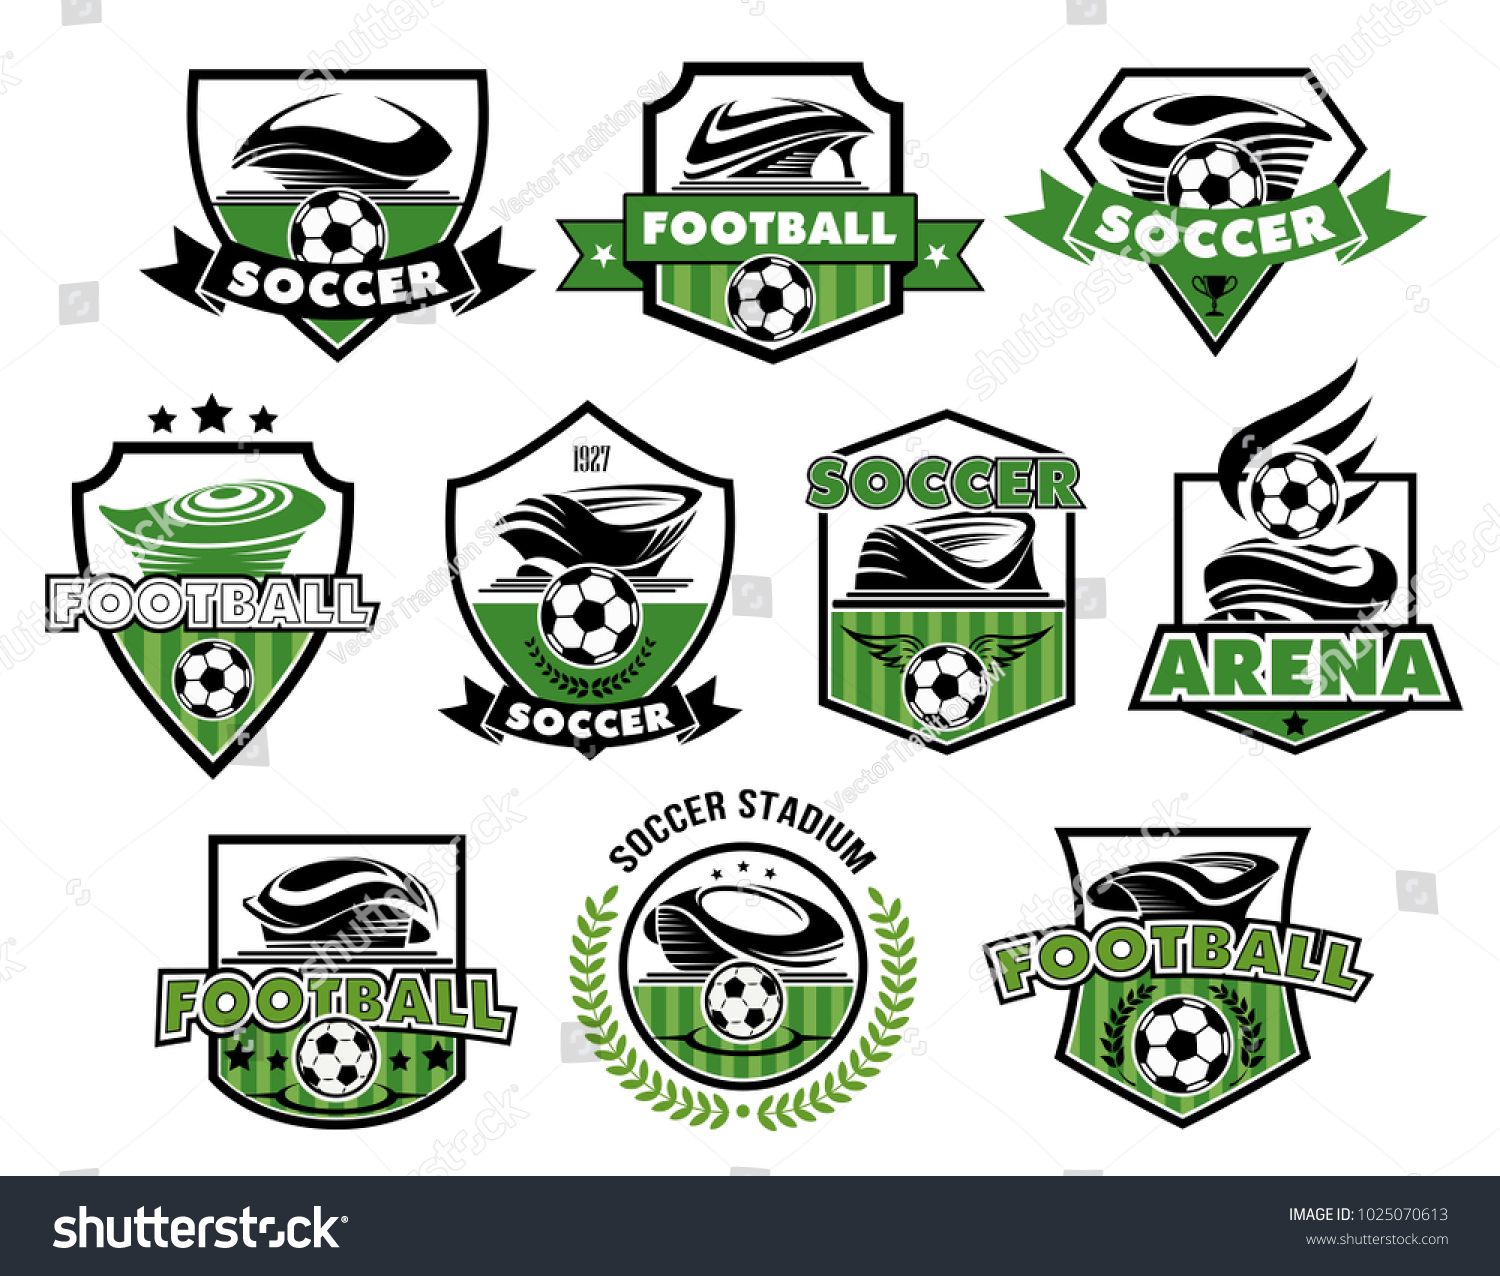 Soccer club football college league team stock vector 1025070613 soccer club or football college league team icons or badges templates vector heraldic shield symbols biocorpaavc Choice Image